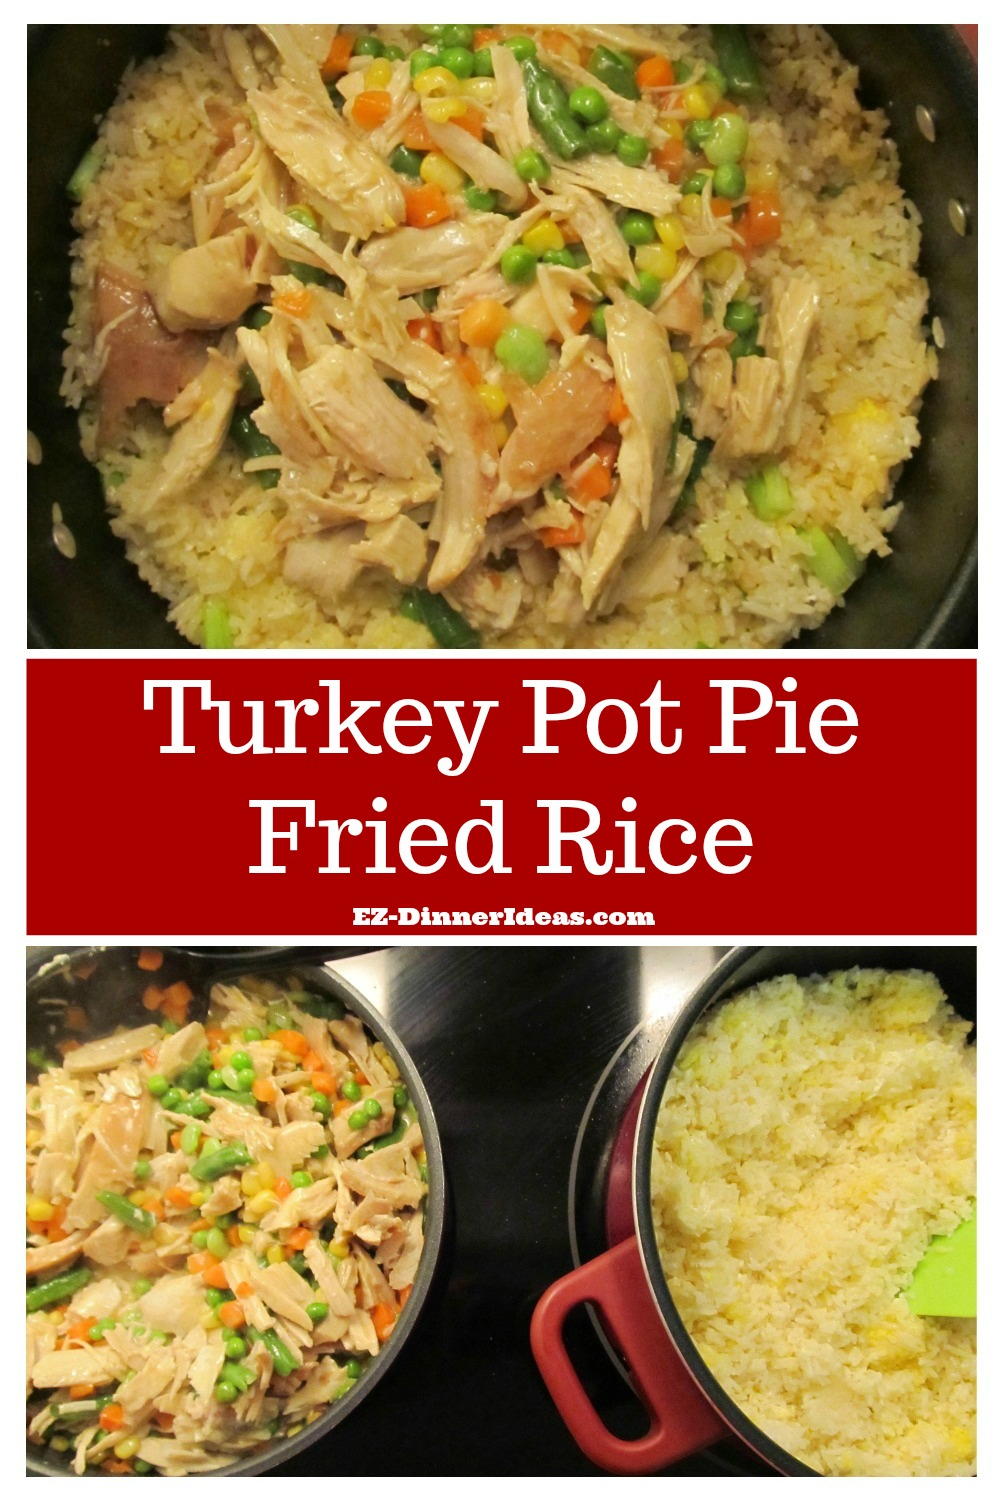 Turkey fried rice is a dish combined with 2 authentic dishes together.  The 2 main ingredients are leftover.  Nothing goes to waste and create a mouthwatering meal.